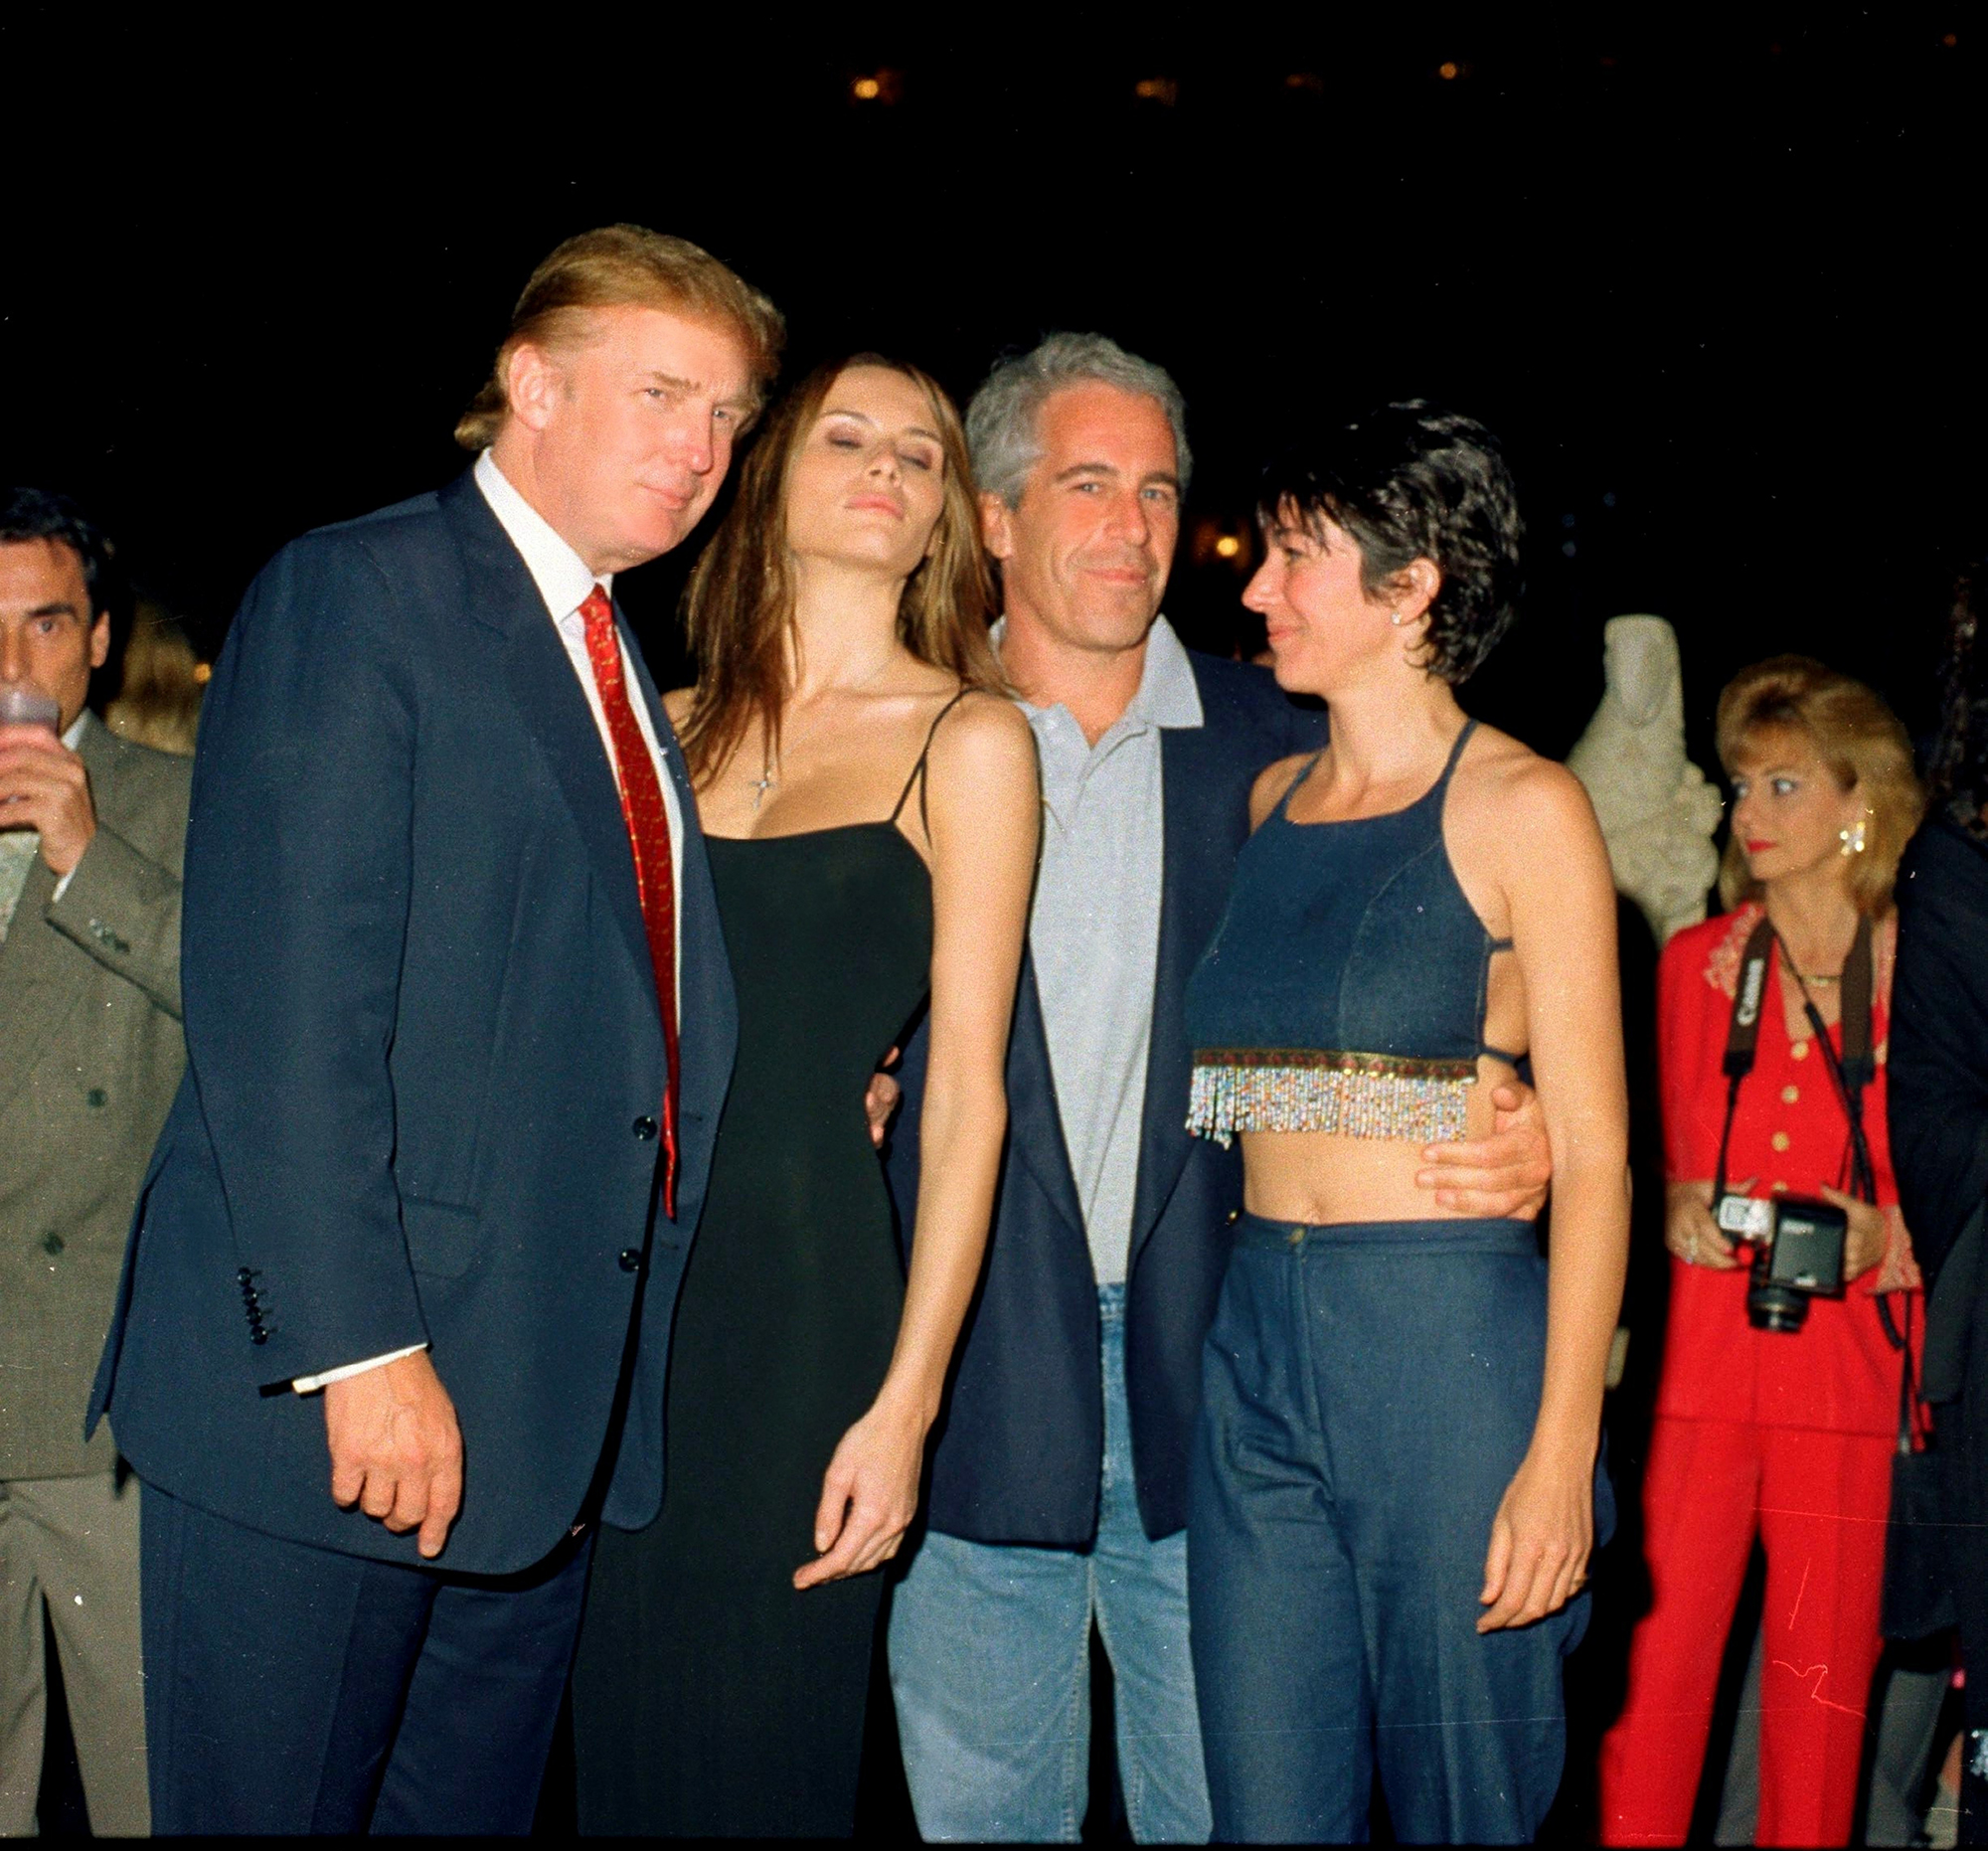 Fox News says it 'mistakenly' cropped Trump out of photo featuring Jeffrey Epstein and Ghislaine Maxwell